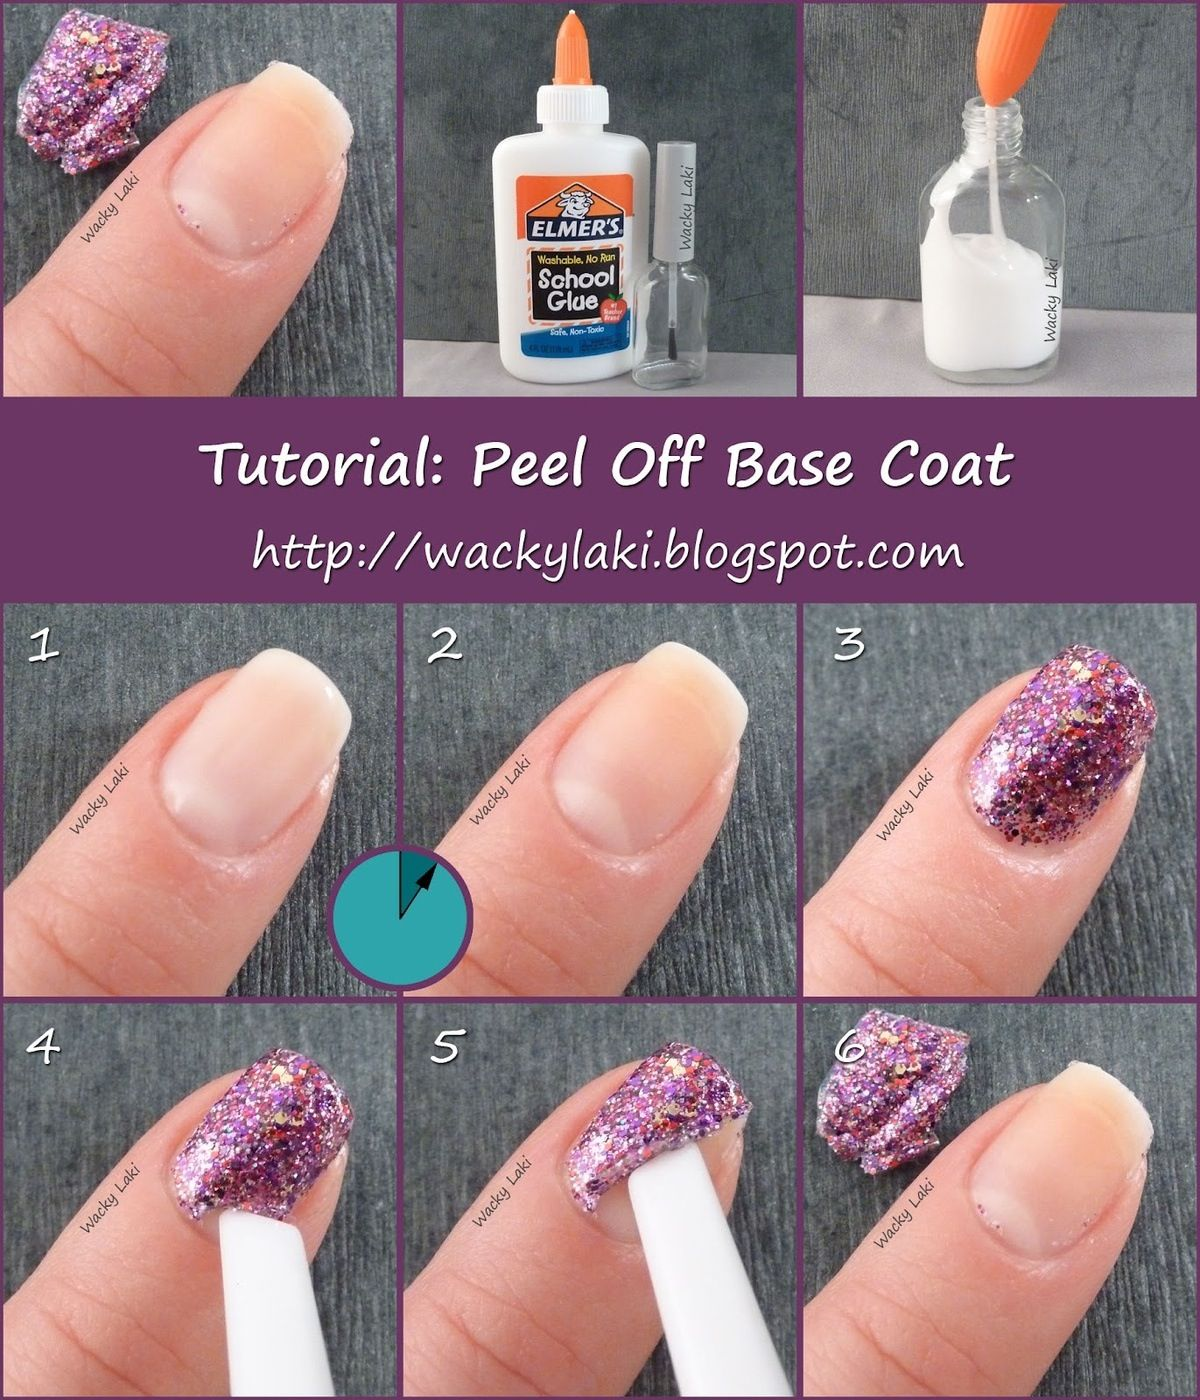 Learn How To Set Your Lipstick So It Lasts Diy Manicure Glitter Nail Polish Diy Beauty Hacks